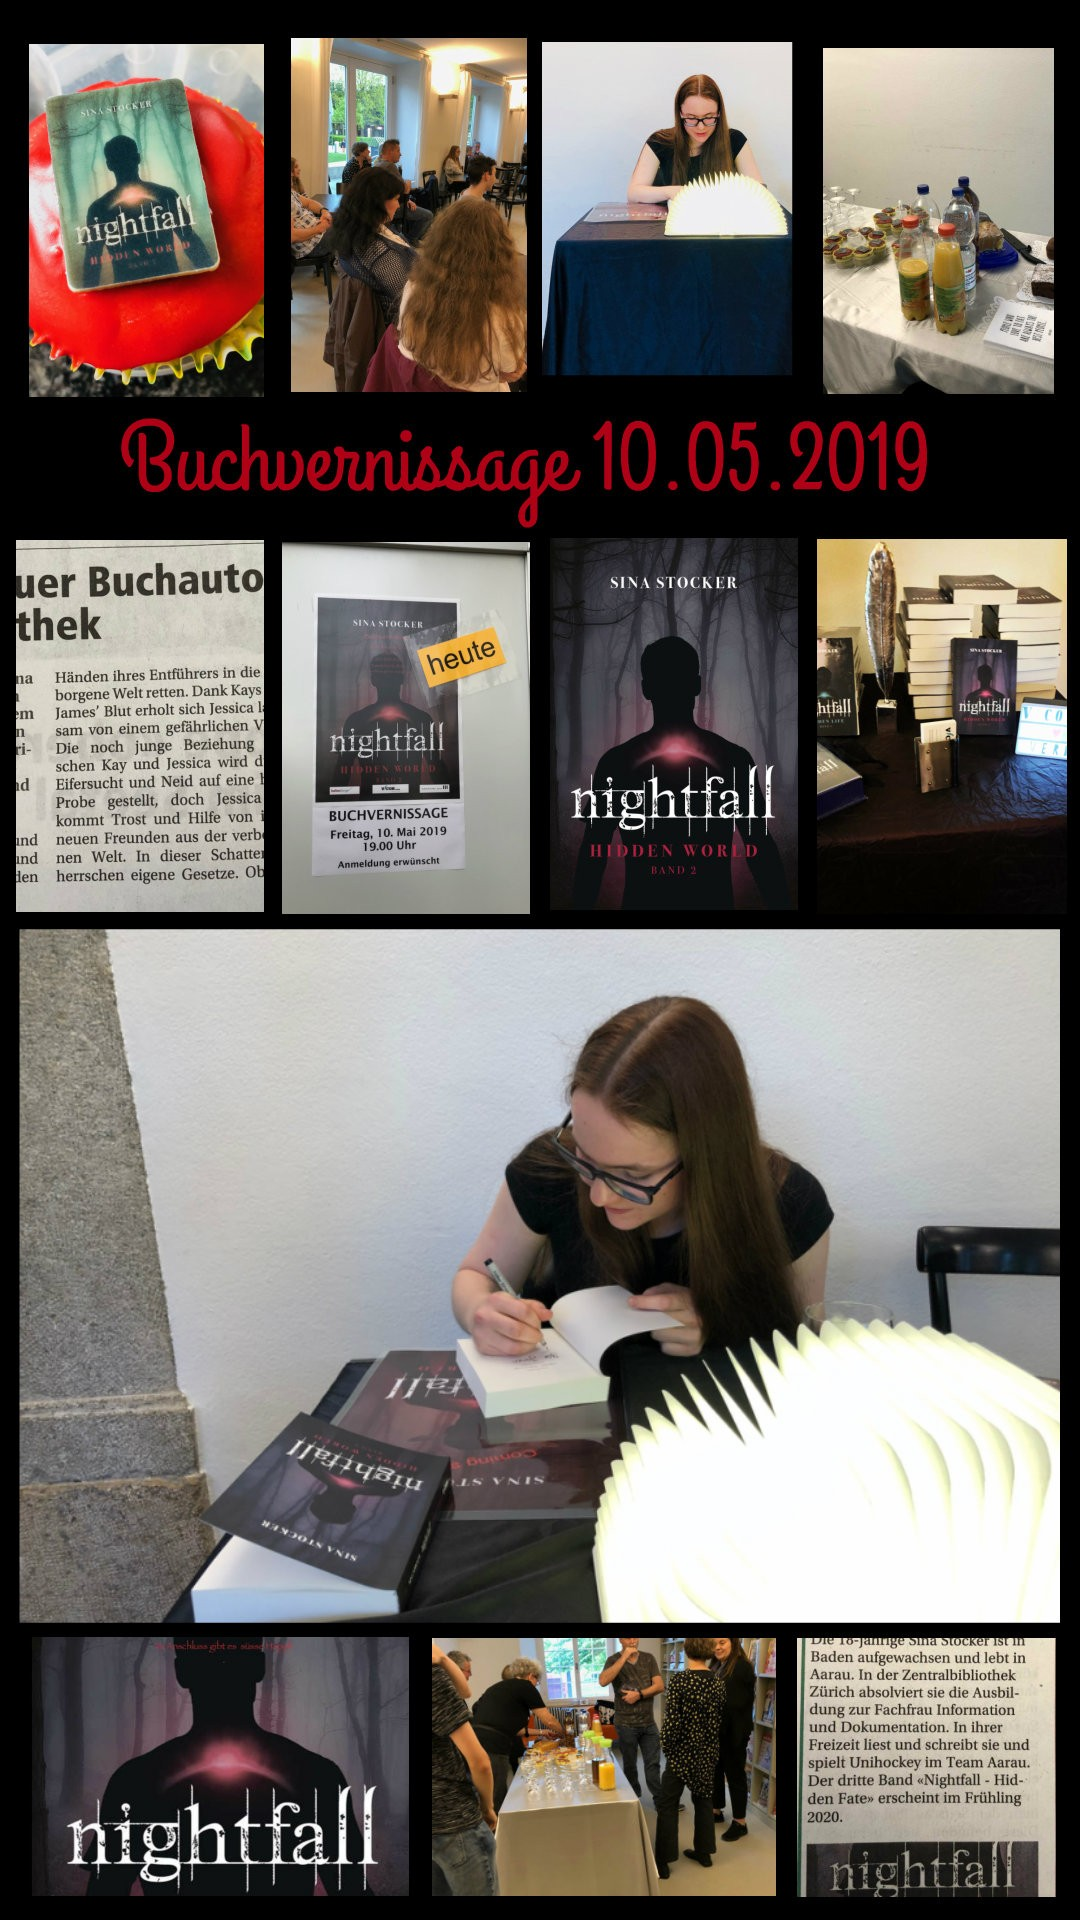 Buchvernissage Nightfall – Hidden world vom 10.05.2019 in der Stadtbibliothek Aarau